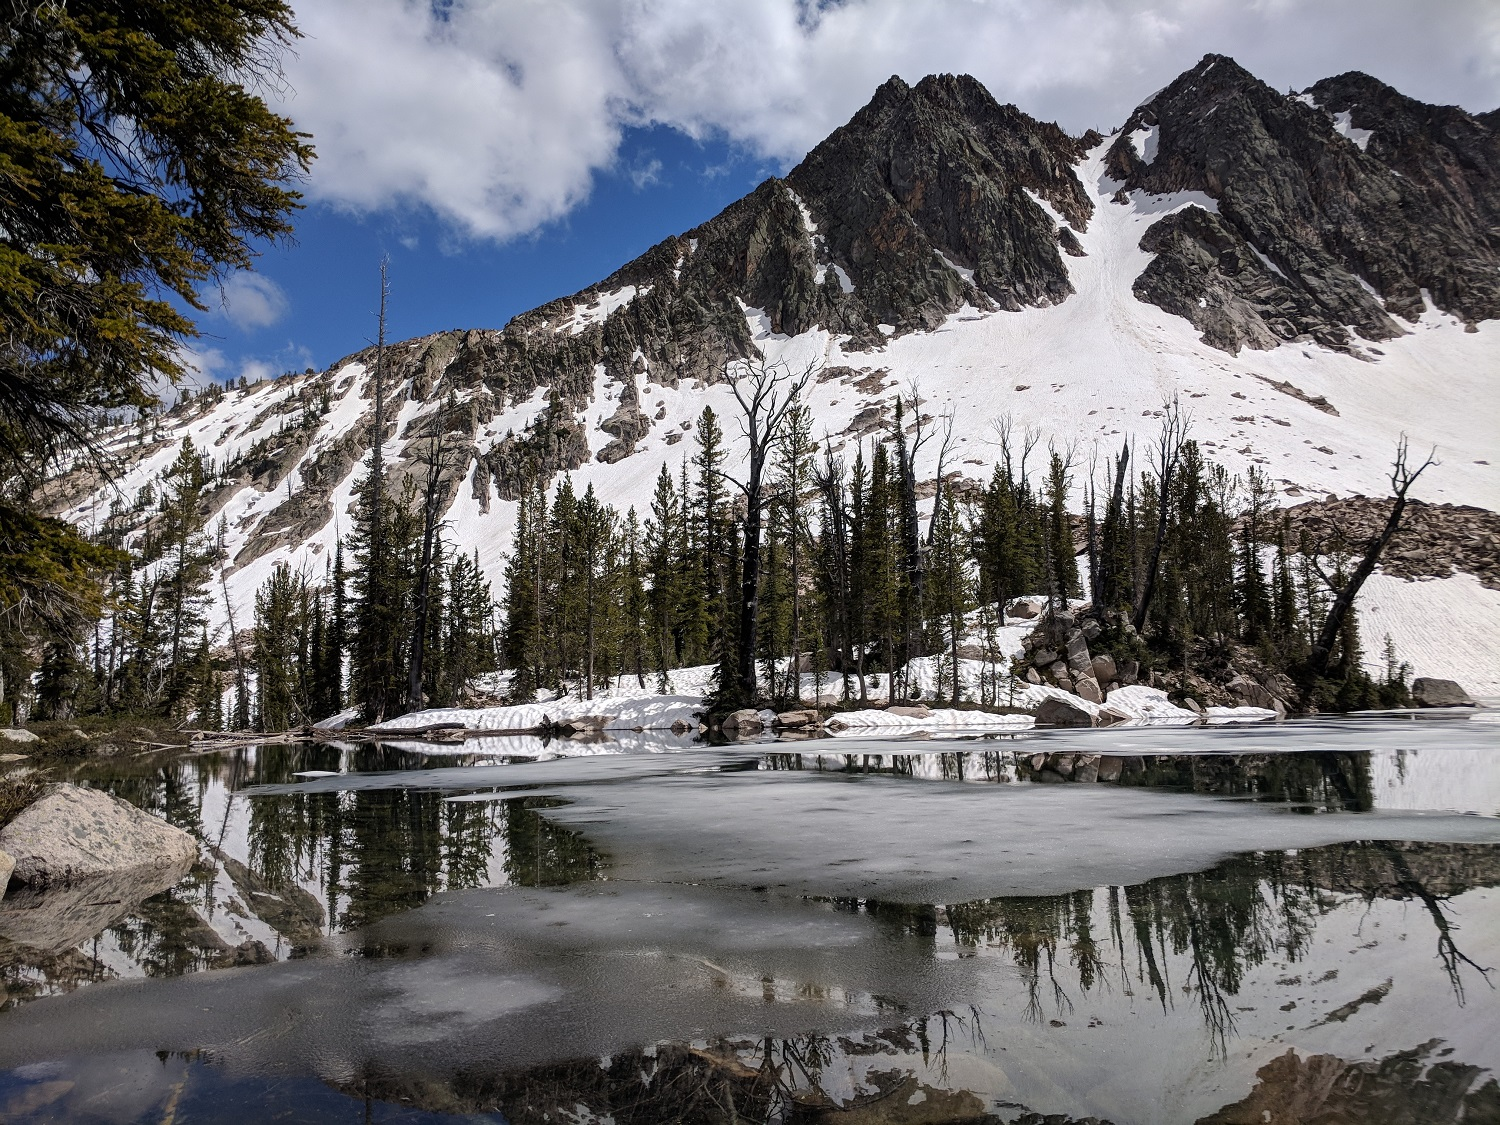 Just an icy unnamed lake near 8700' in the Sawtooth Wilderness. NBD.